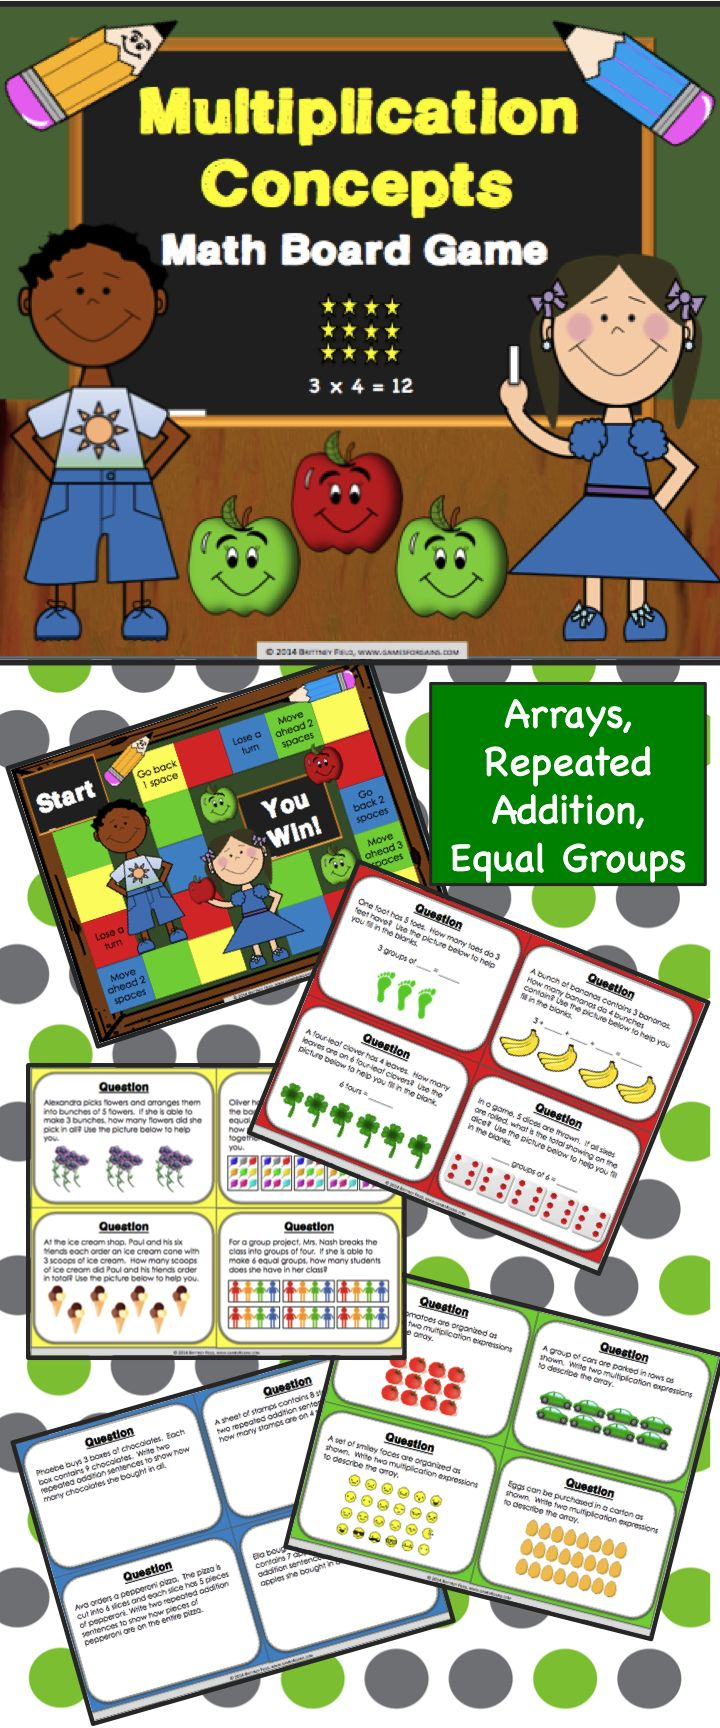 This Multiplication Concepts Board Game contains 32 WORD PROBLEM game cards and a game board to help students practice solving and interpreting multiplication problems using equal groups, repeated addition, and arrays. This game works great as a pair/group activity, or for use in math centers.